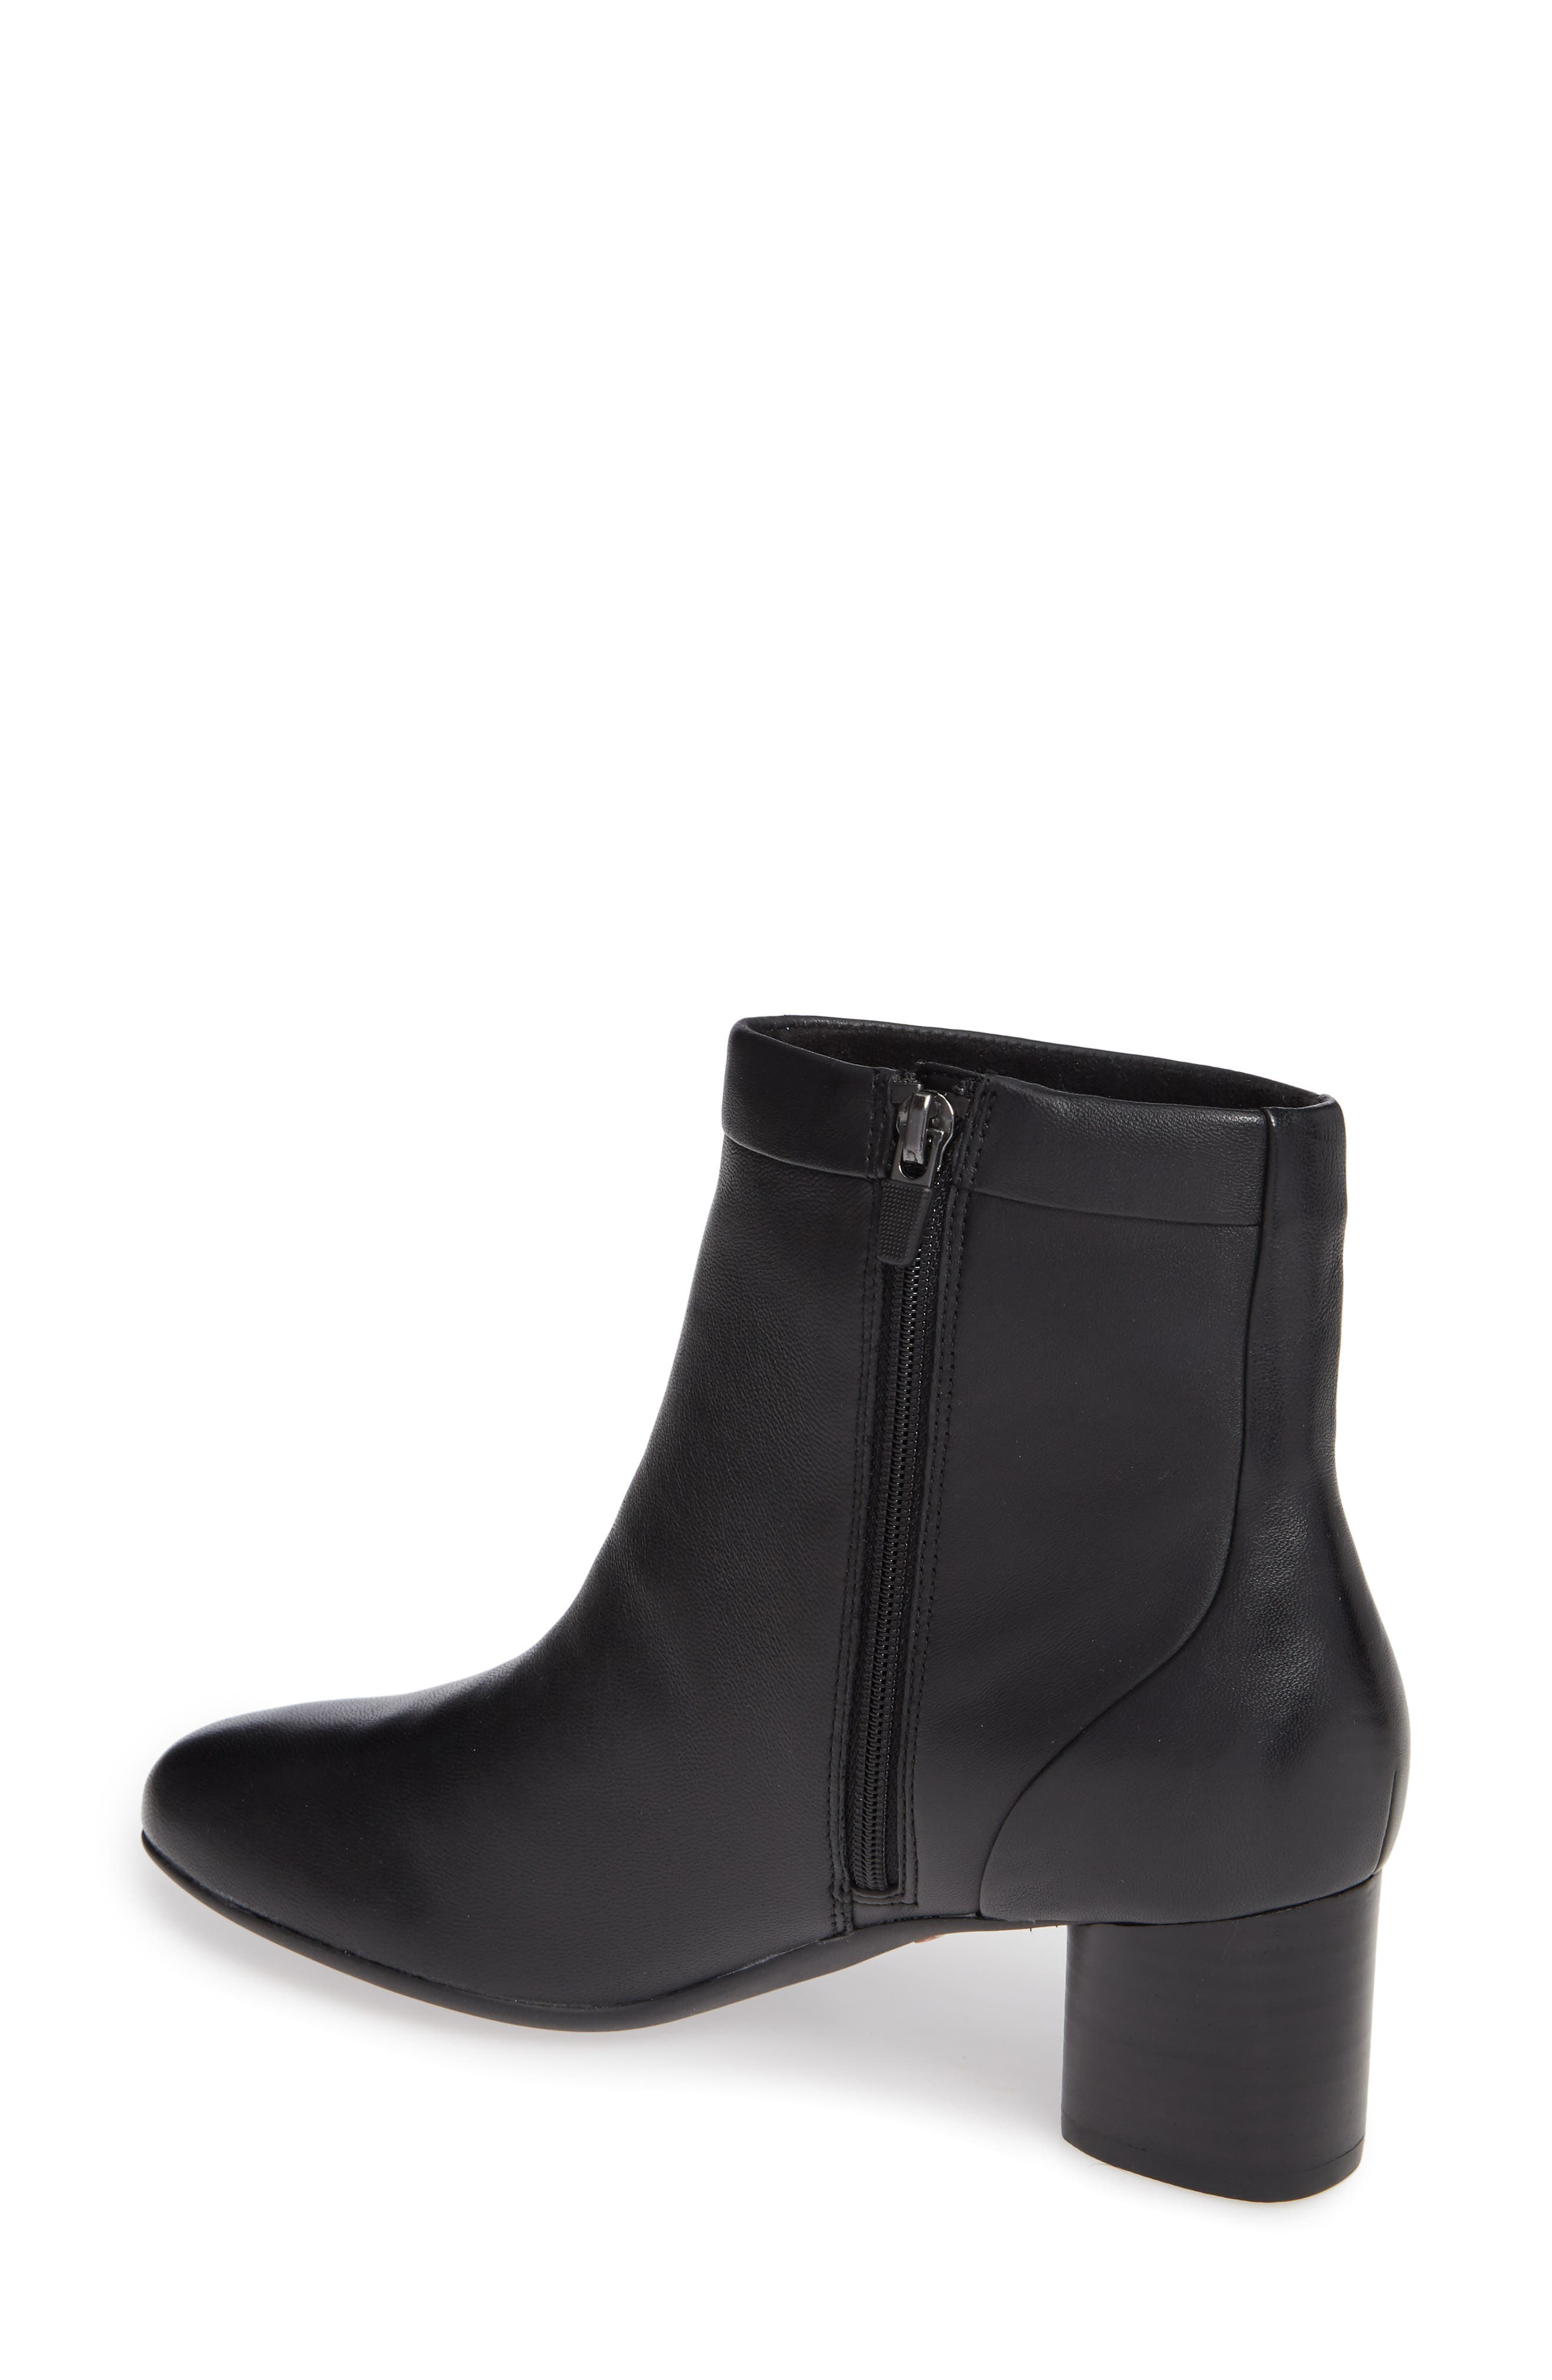 CLARKS<SUP>®</SUP>, Un Cosmo Up Bootie, Alternate thumbnail 2, color, BLACK LEATHER